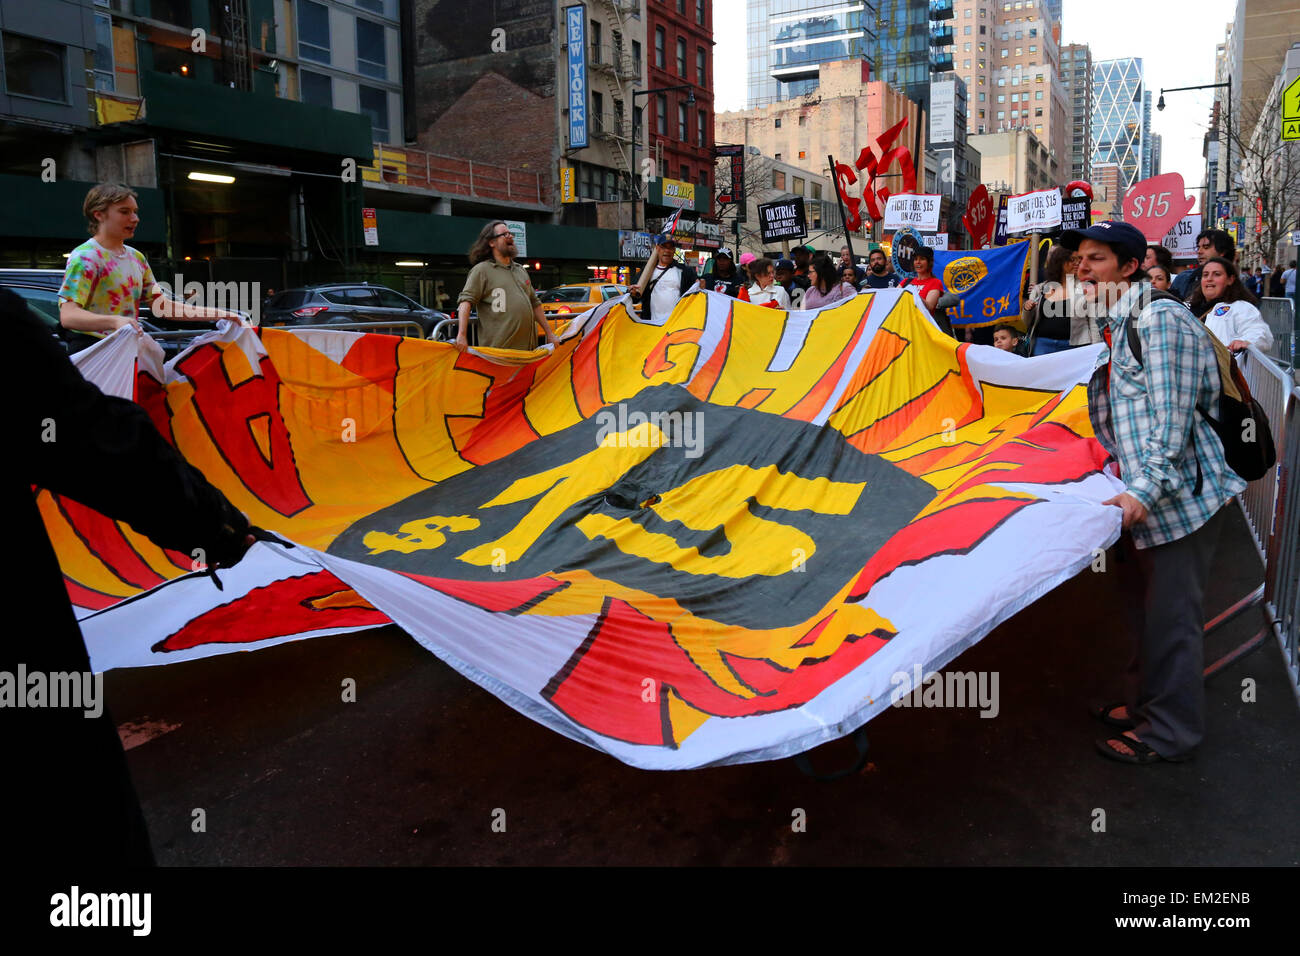 Activists unfurl a large parachute banner demonstrating in favor of a $15 an hour living wage. - Stock Image